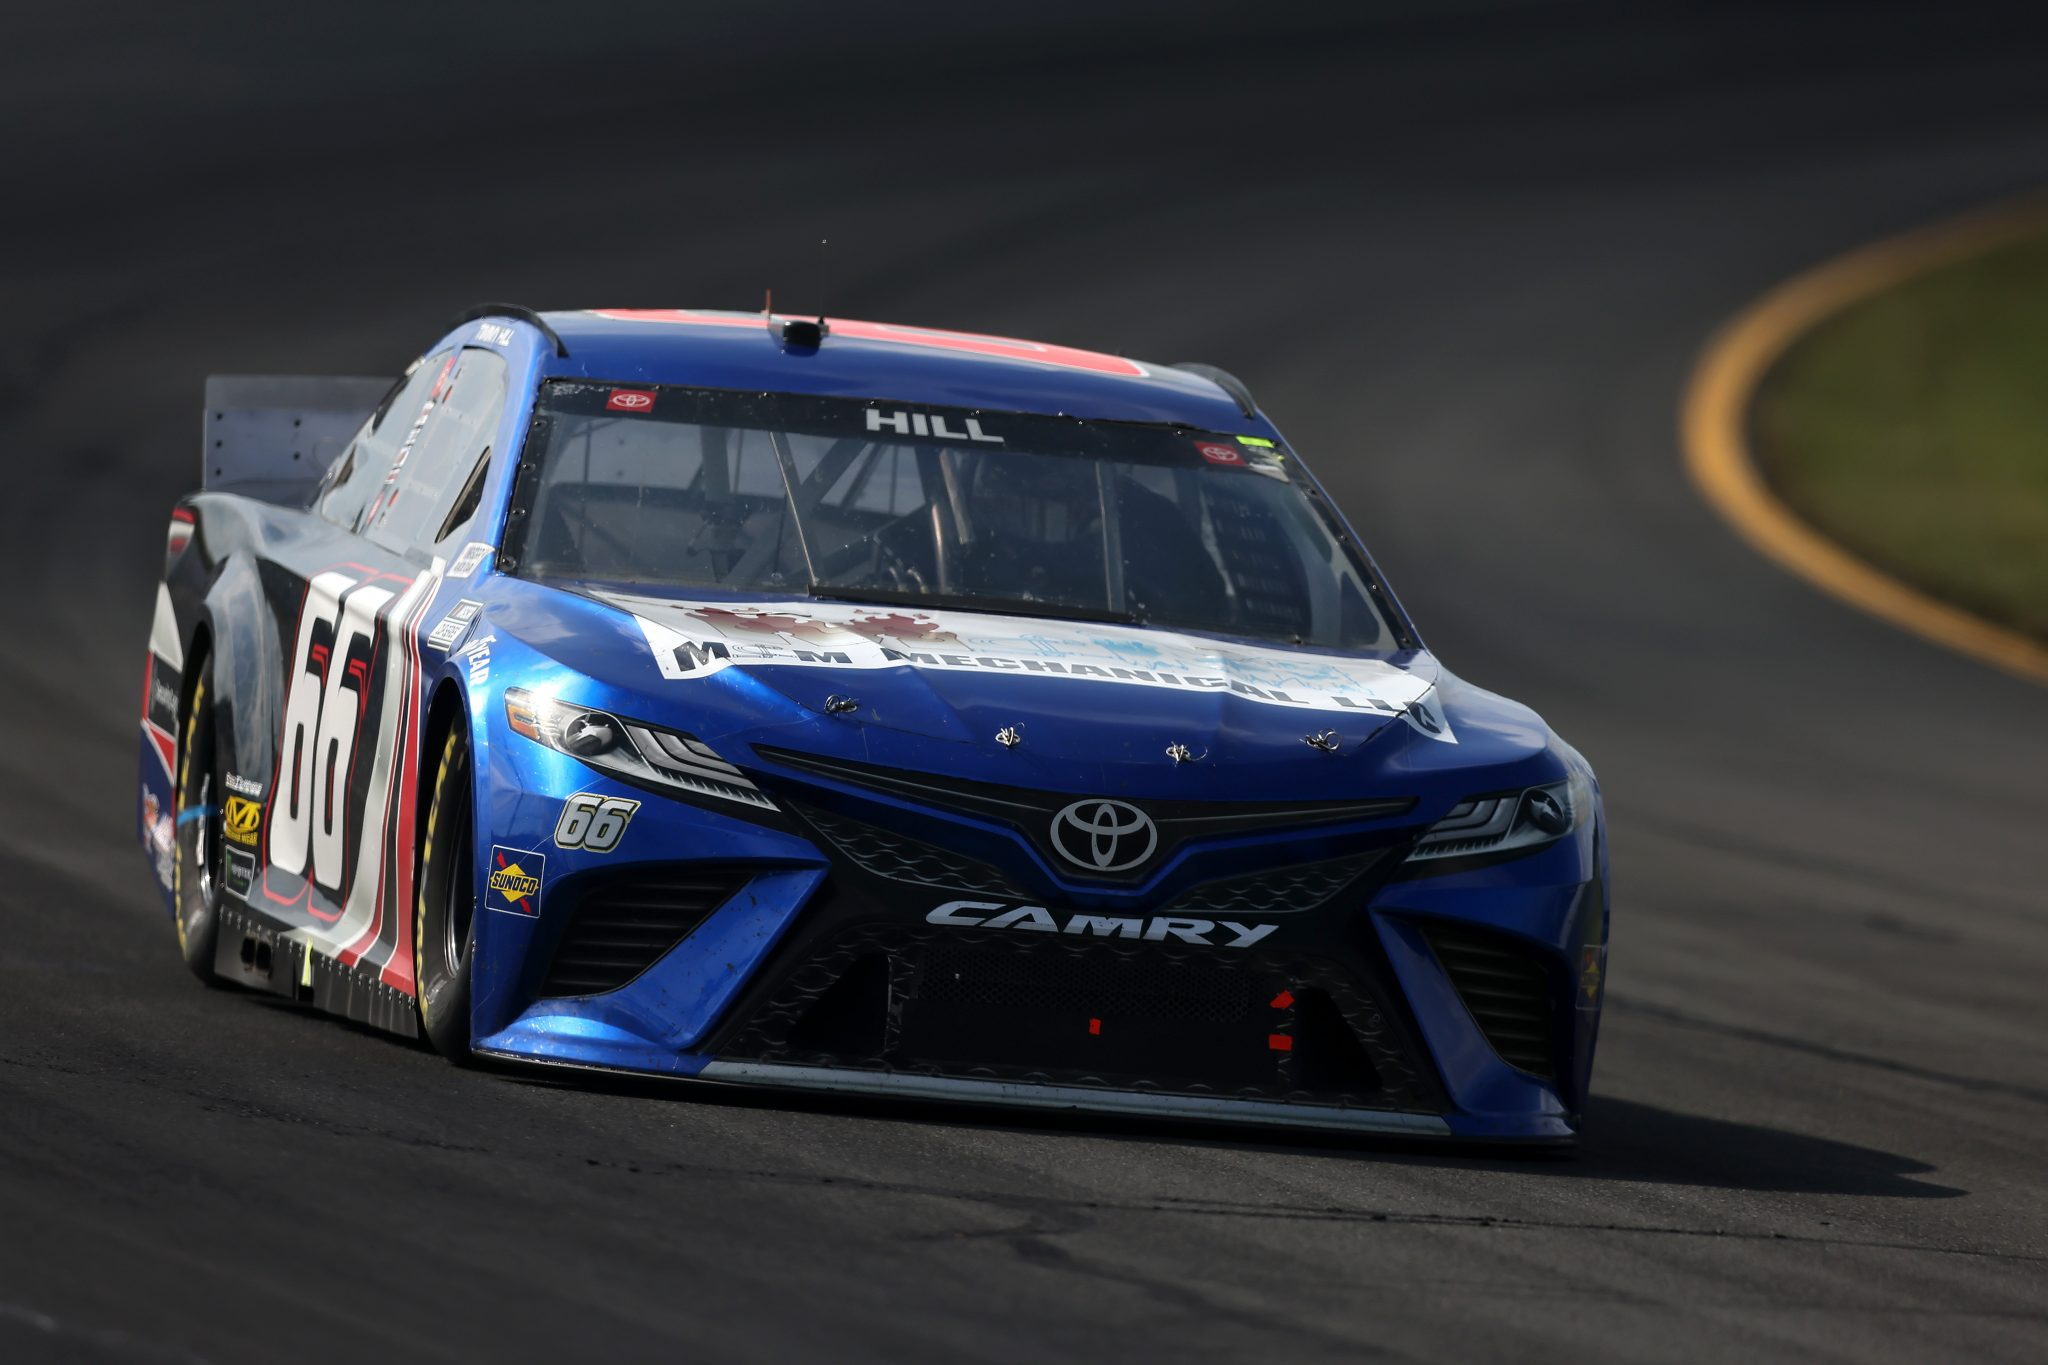 LONG POND, PENNSYLVANIA - JUNE 27: Timmy Hill, driver of the #66 M&M Mechanical Toyota, drives during the NASCAR Cup Series Explore the Pocono Mountains 350 at Pocono Raceway on June 27, 2021 in Long Pond, Pennsylvania. (Photo by James Gilbert/Getty Images) | Getty Images